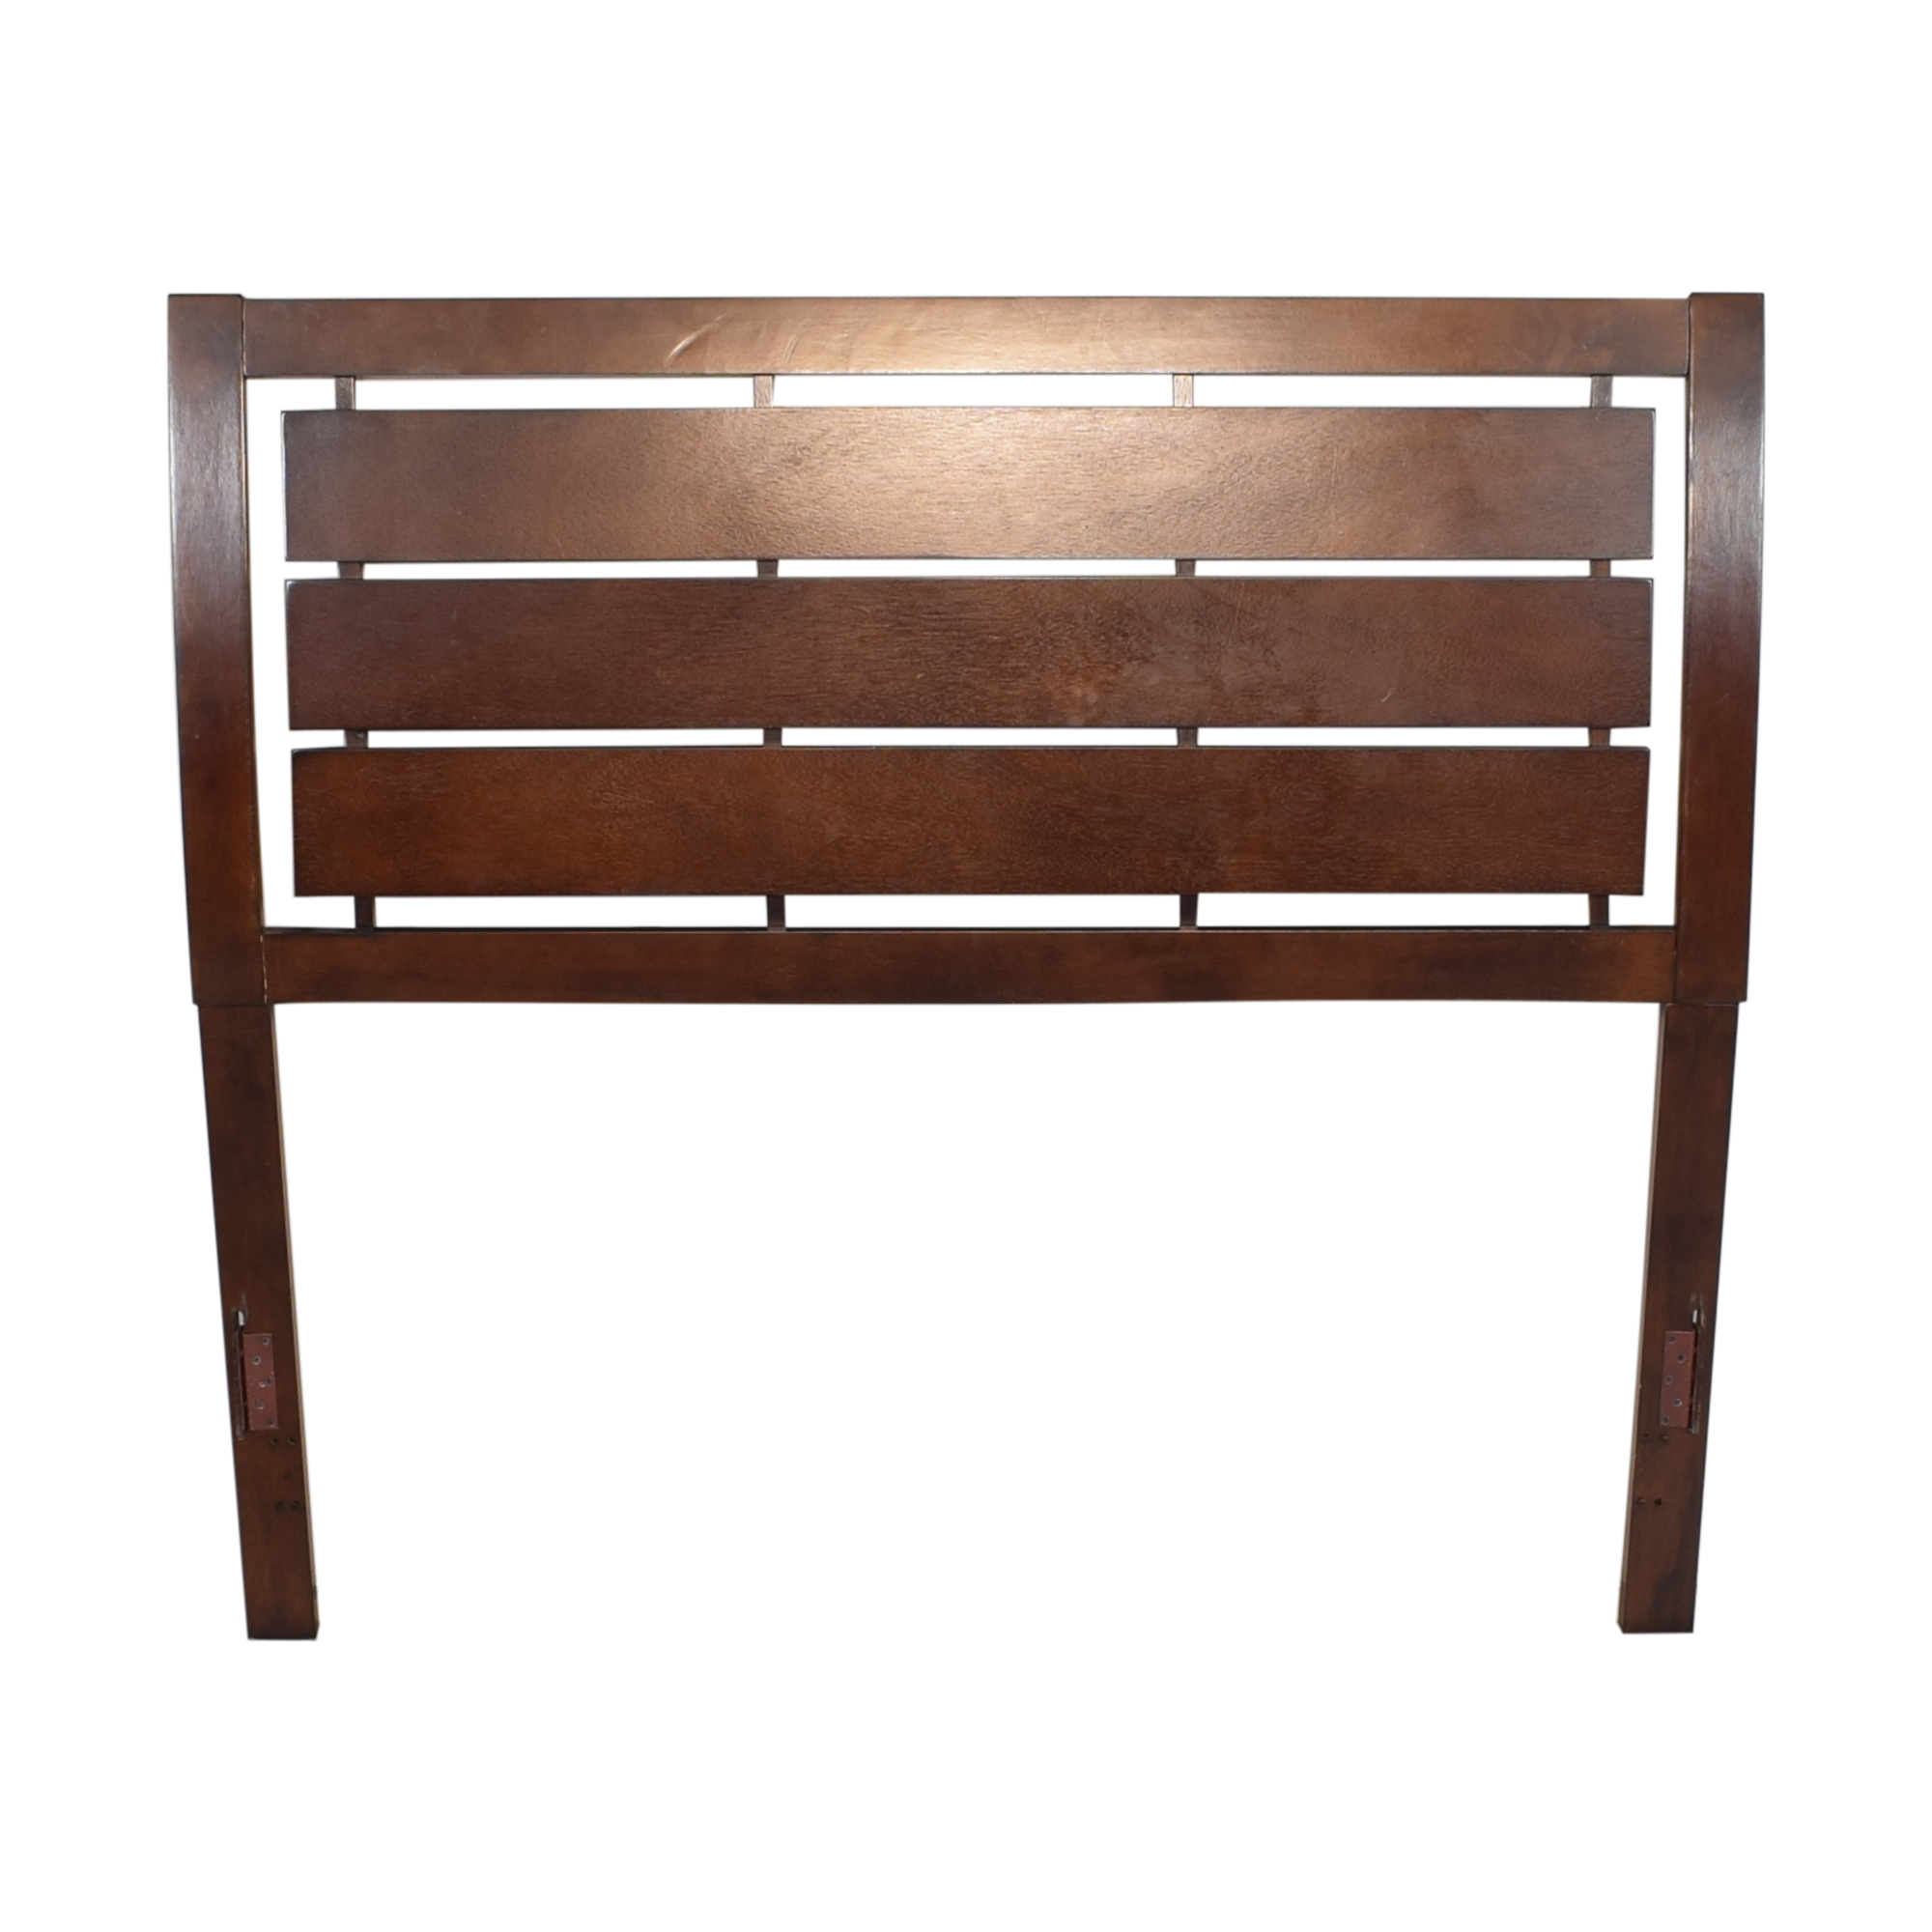 buy Wayfair Wayfair Full Slat Headboard online